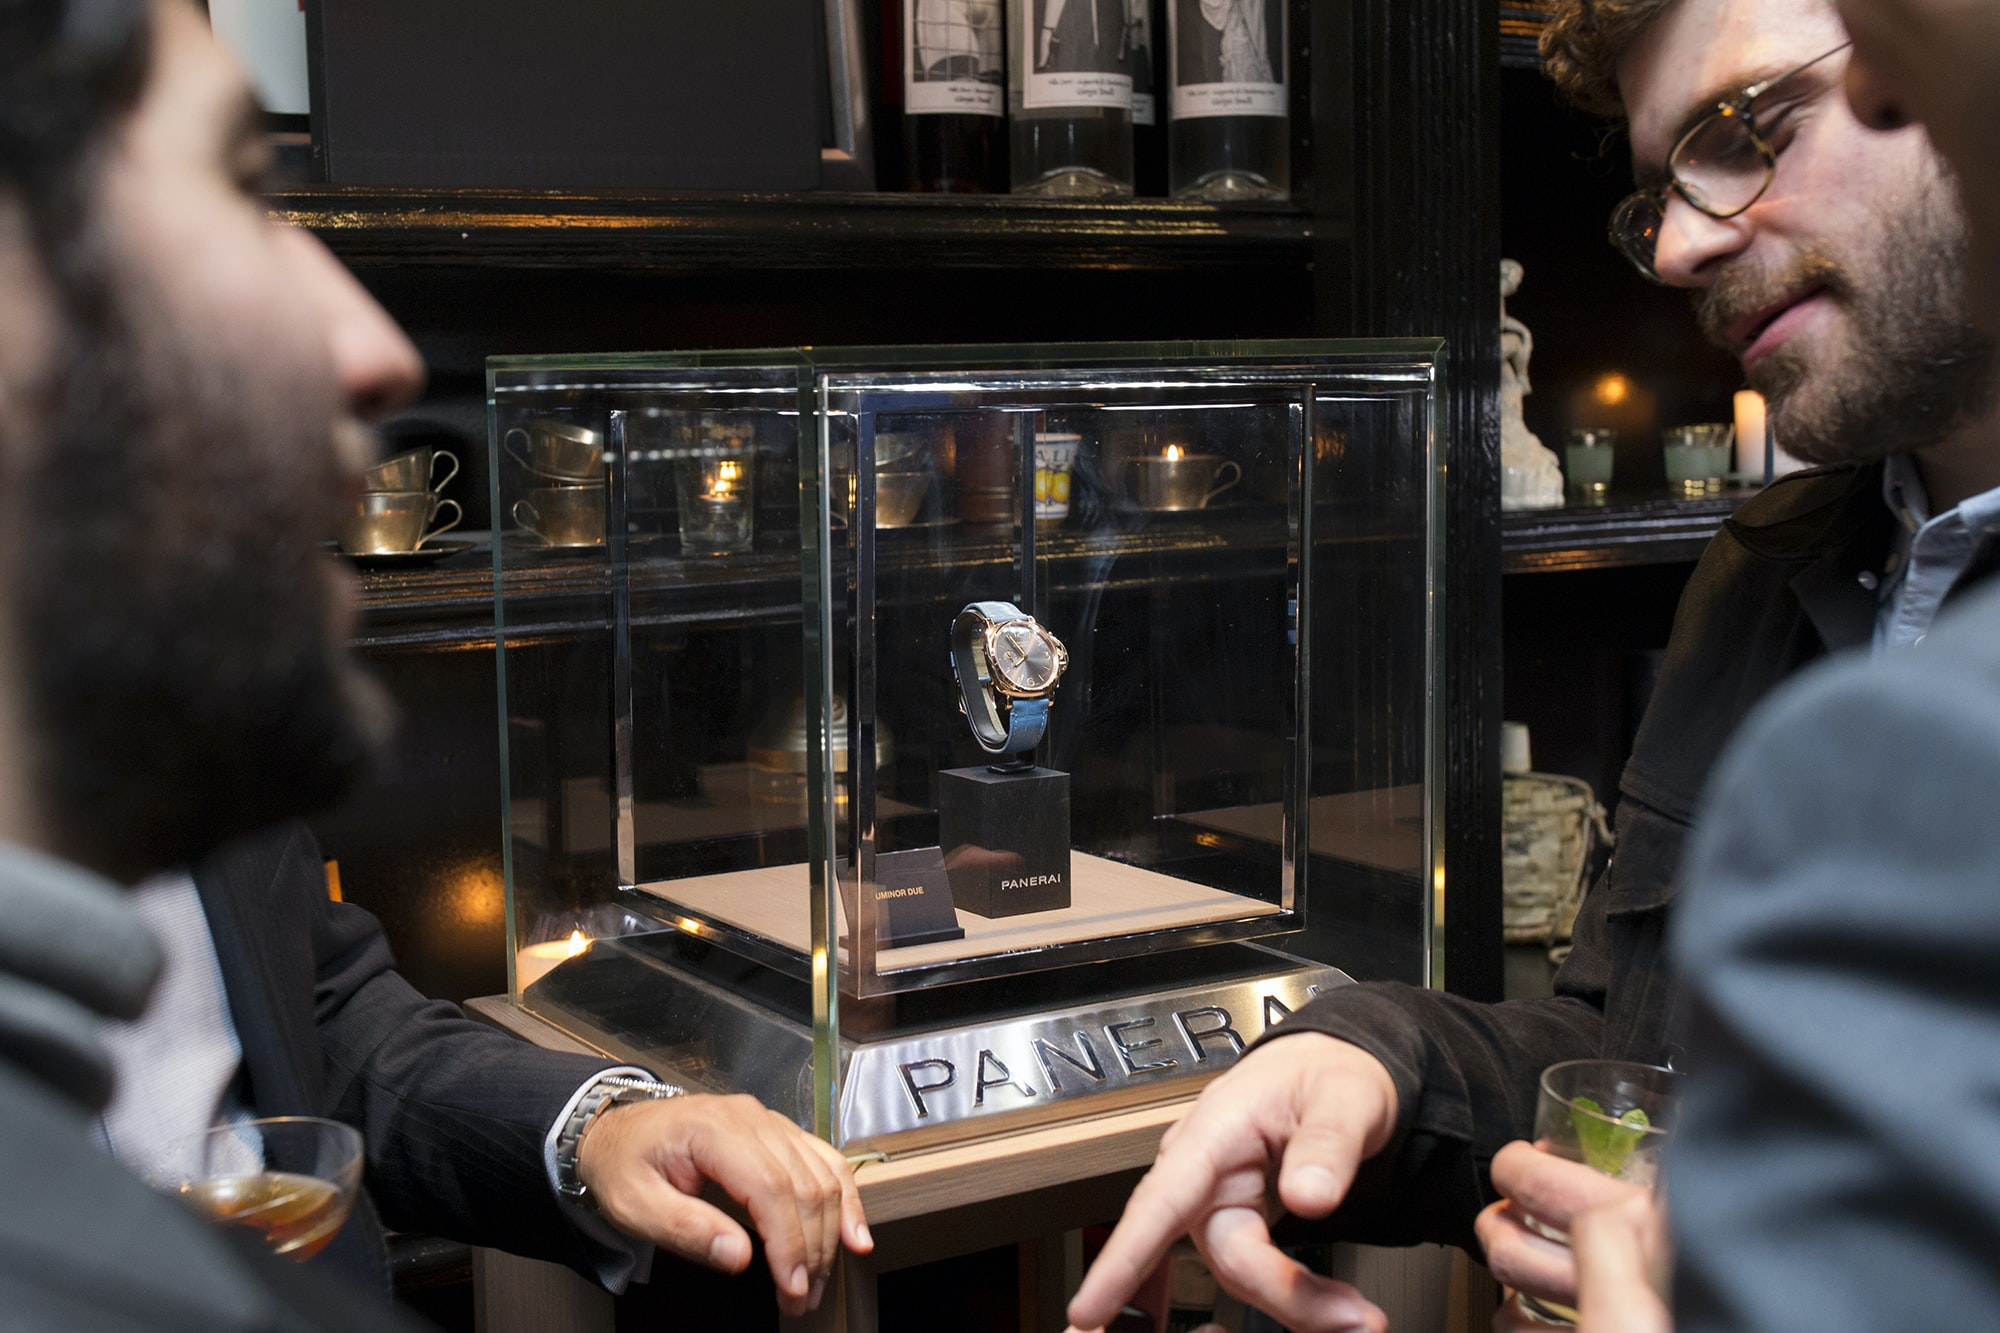 Photo Report: Celebrating The Panerai Luminor Due Collection In New York Photo Report: Celebrating The Panerai Luminor Due Collection In New York  B89A7436